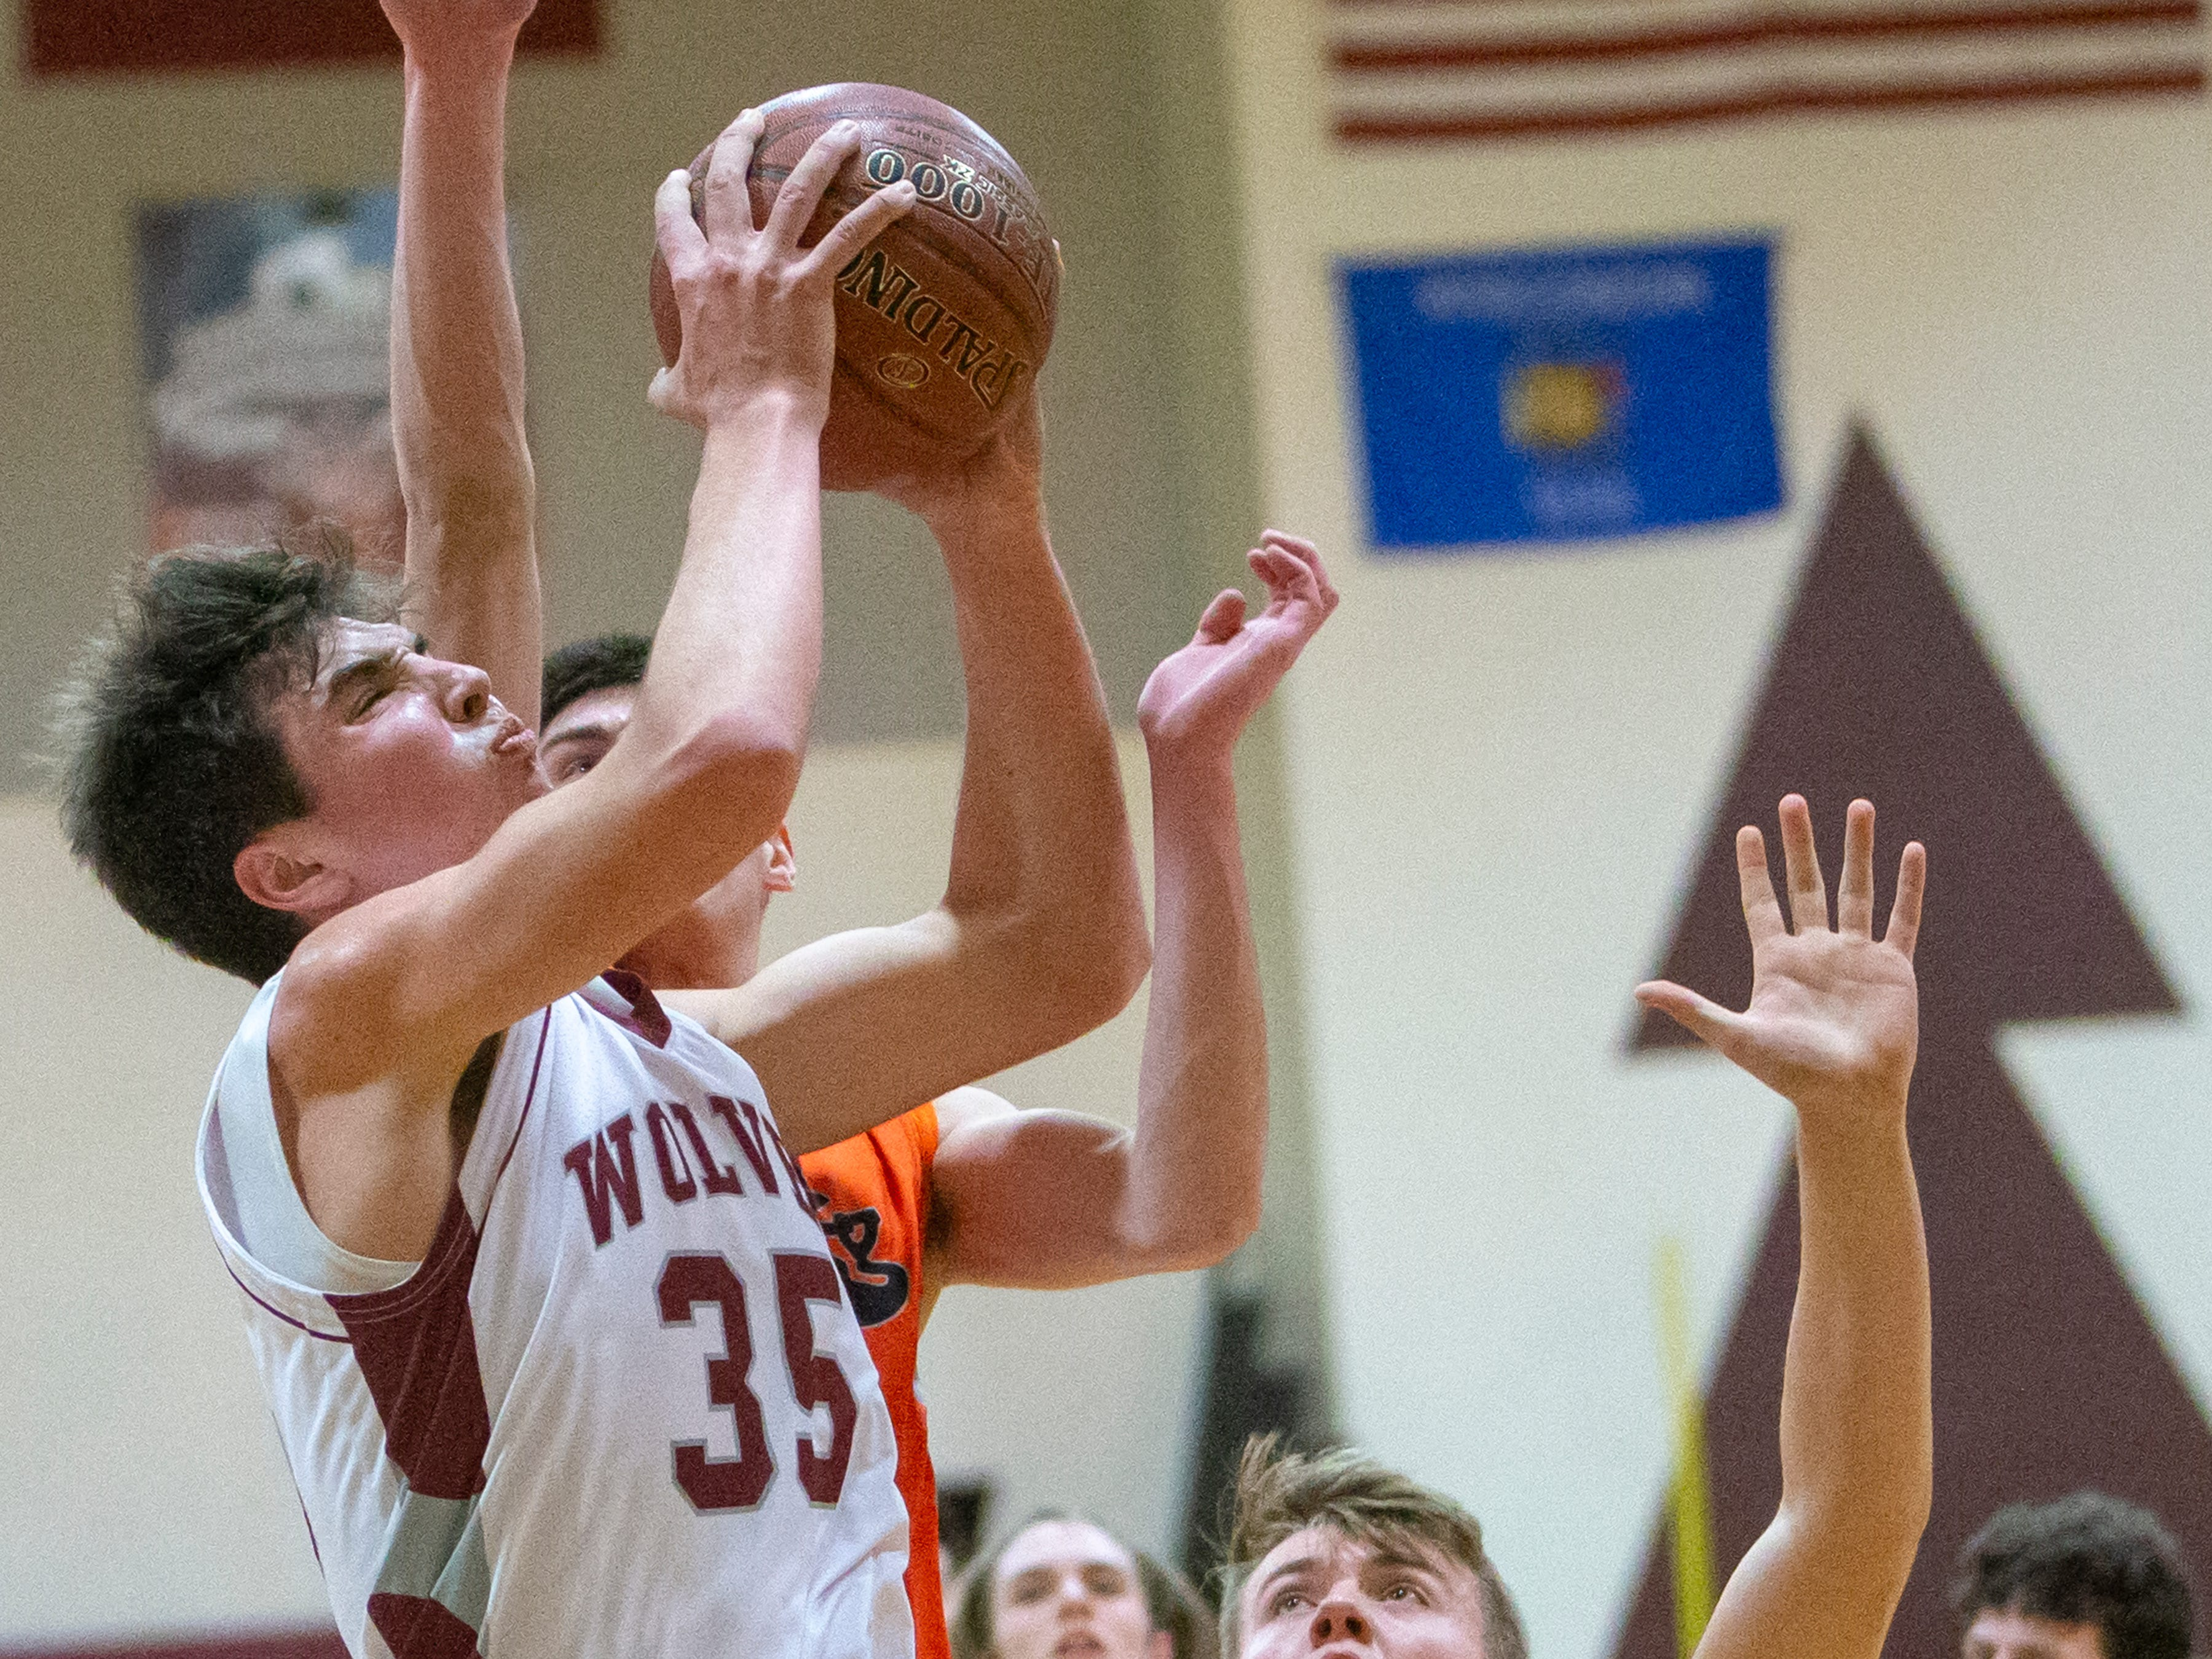 Winneconne's Greg Murawski goes up for a shot playing against Ripon at Winneconne High School on Thursday, January 24, 2019.